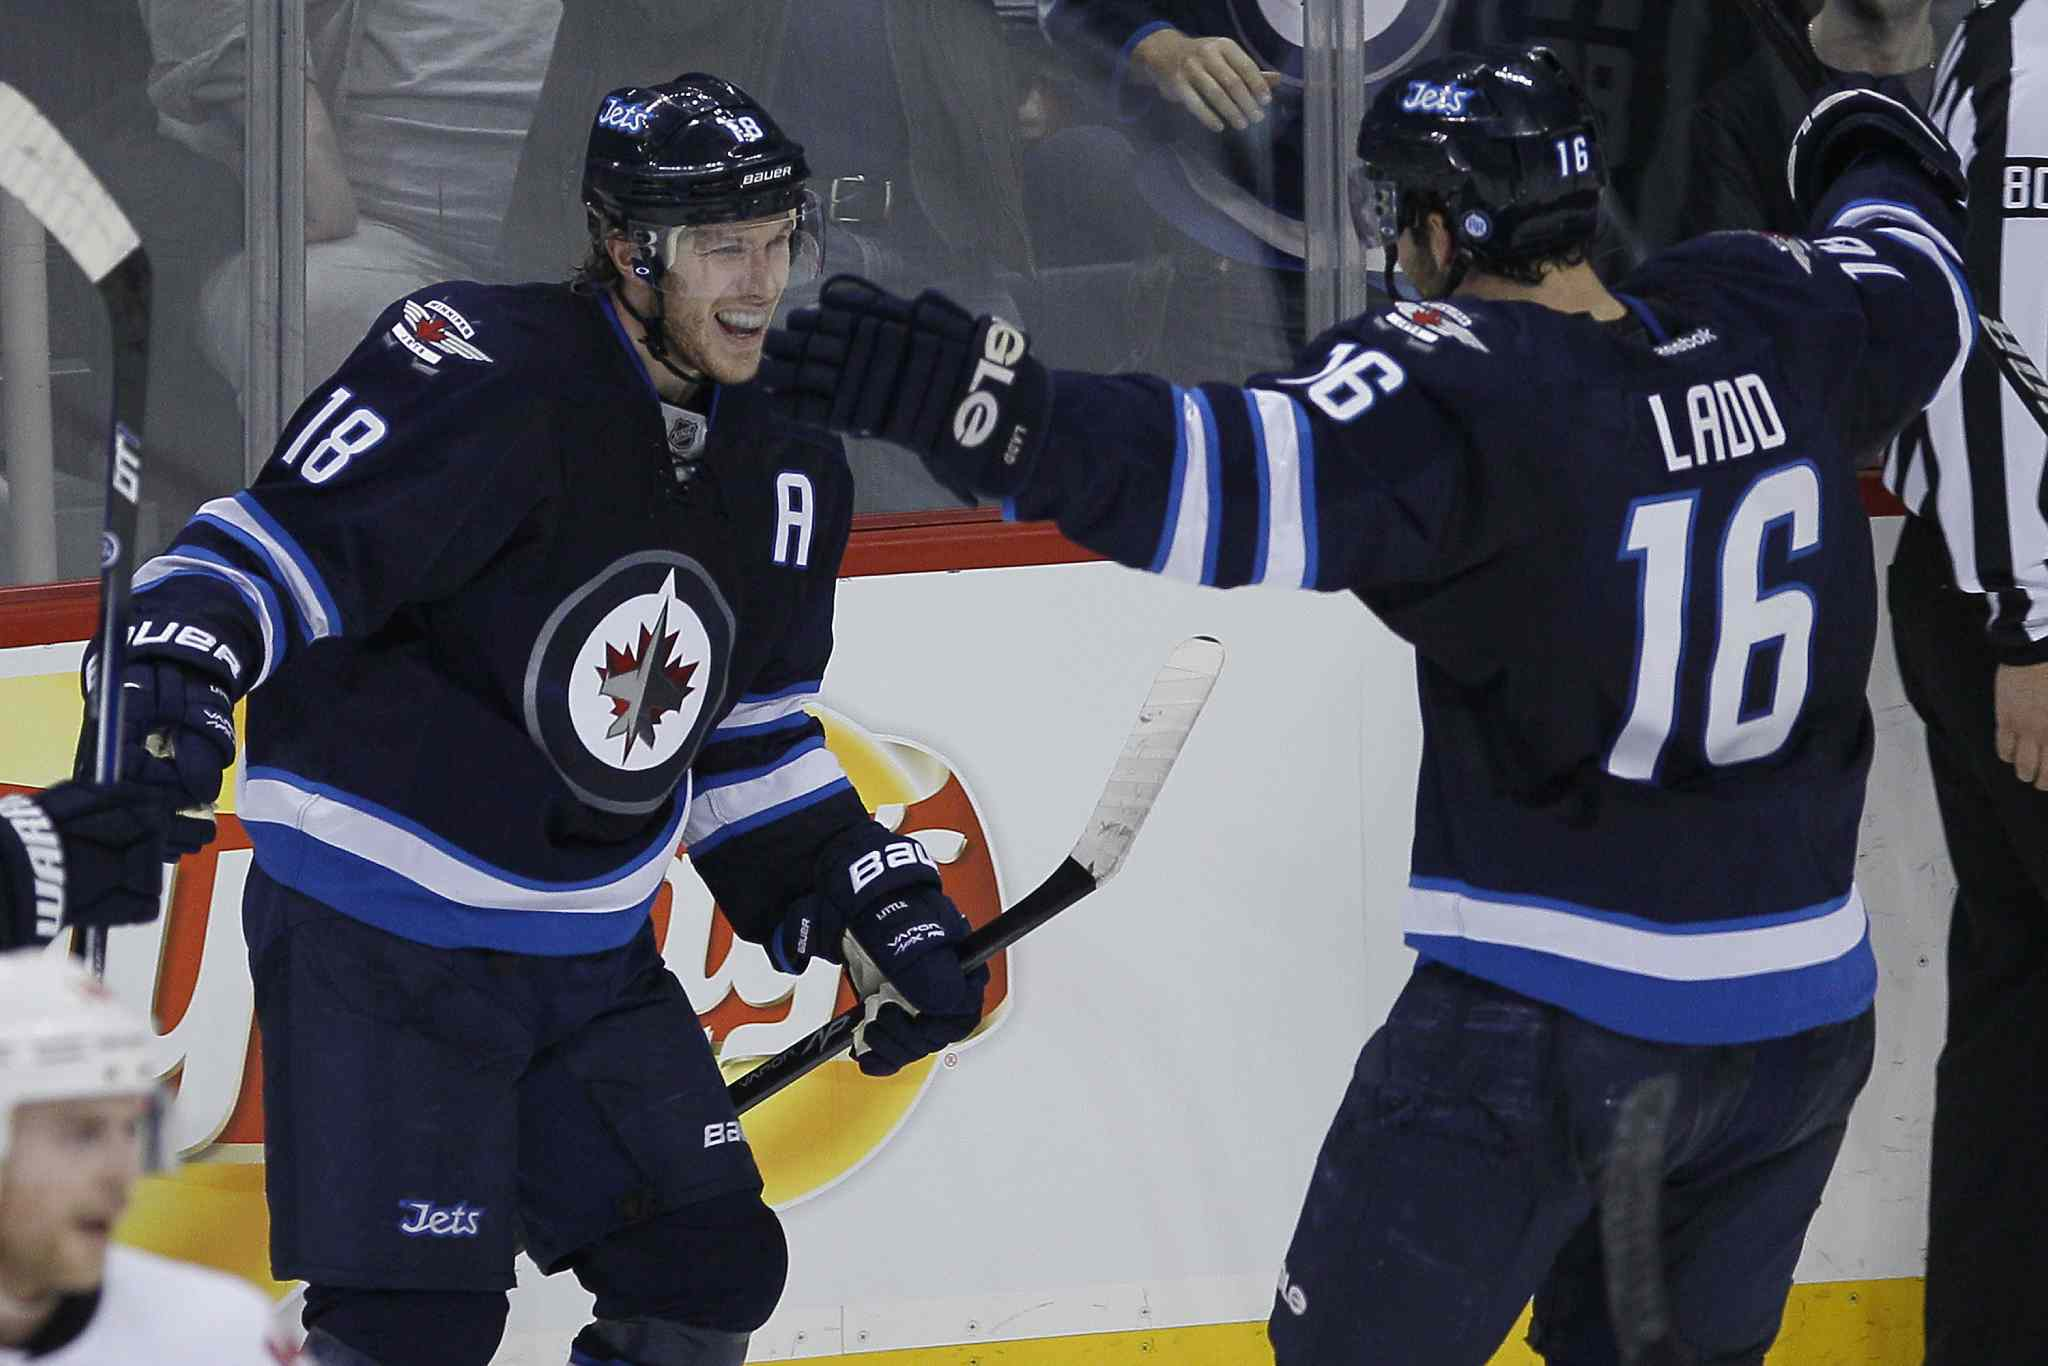 Winnipeg Jets' Bryan Little (18) and Andrew Ladd (16) celebrate  Little's goal against the Calgary Flames with 6 seconds left in the  during third period NHL action in Winnipeg on Monday, Nov. 18, 2013.